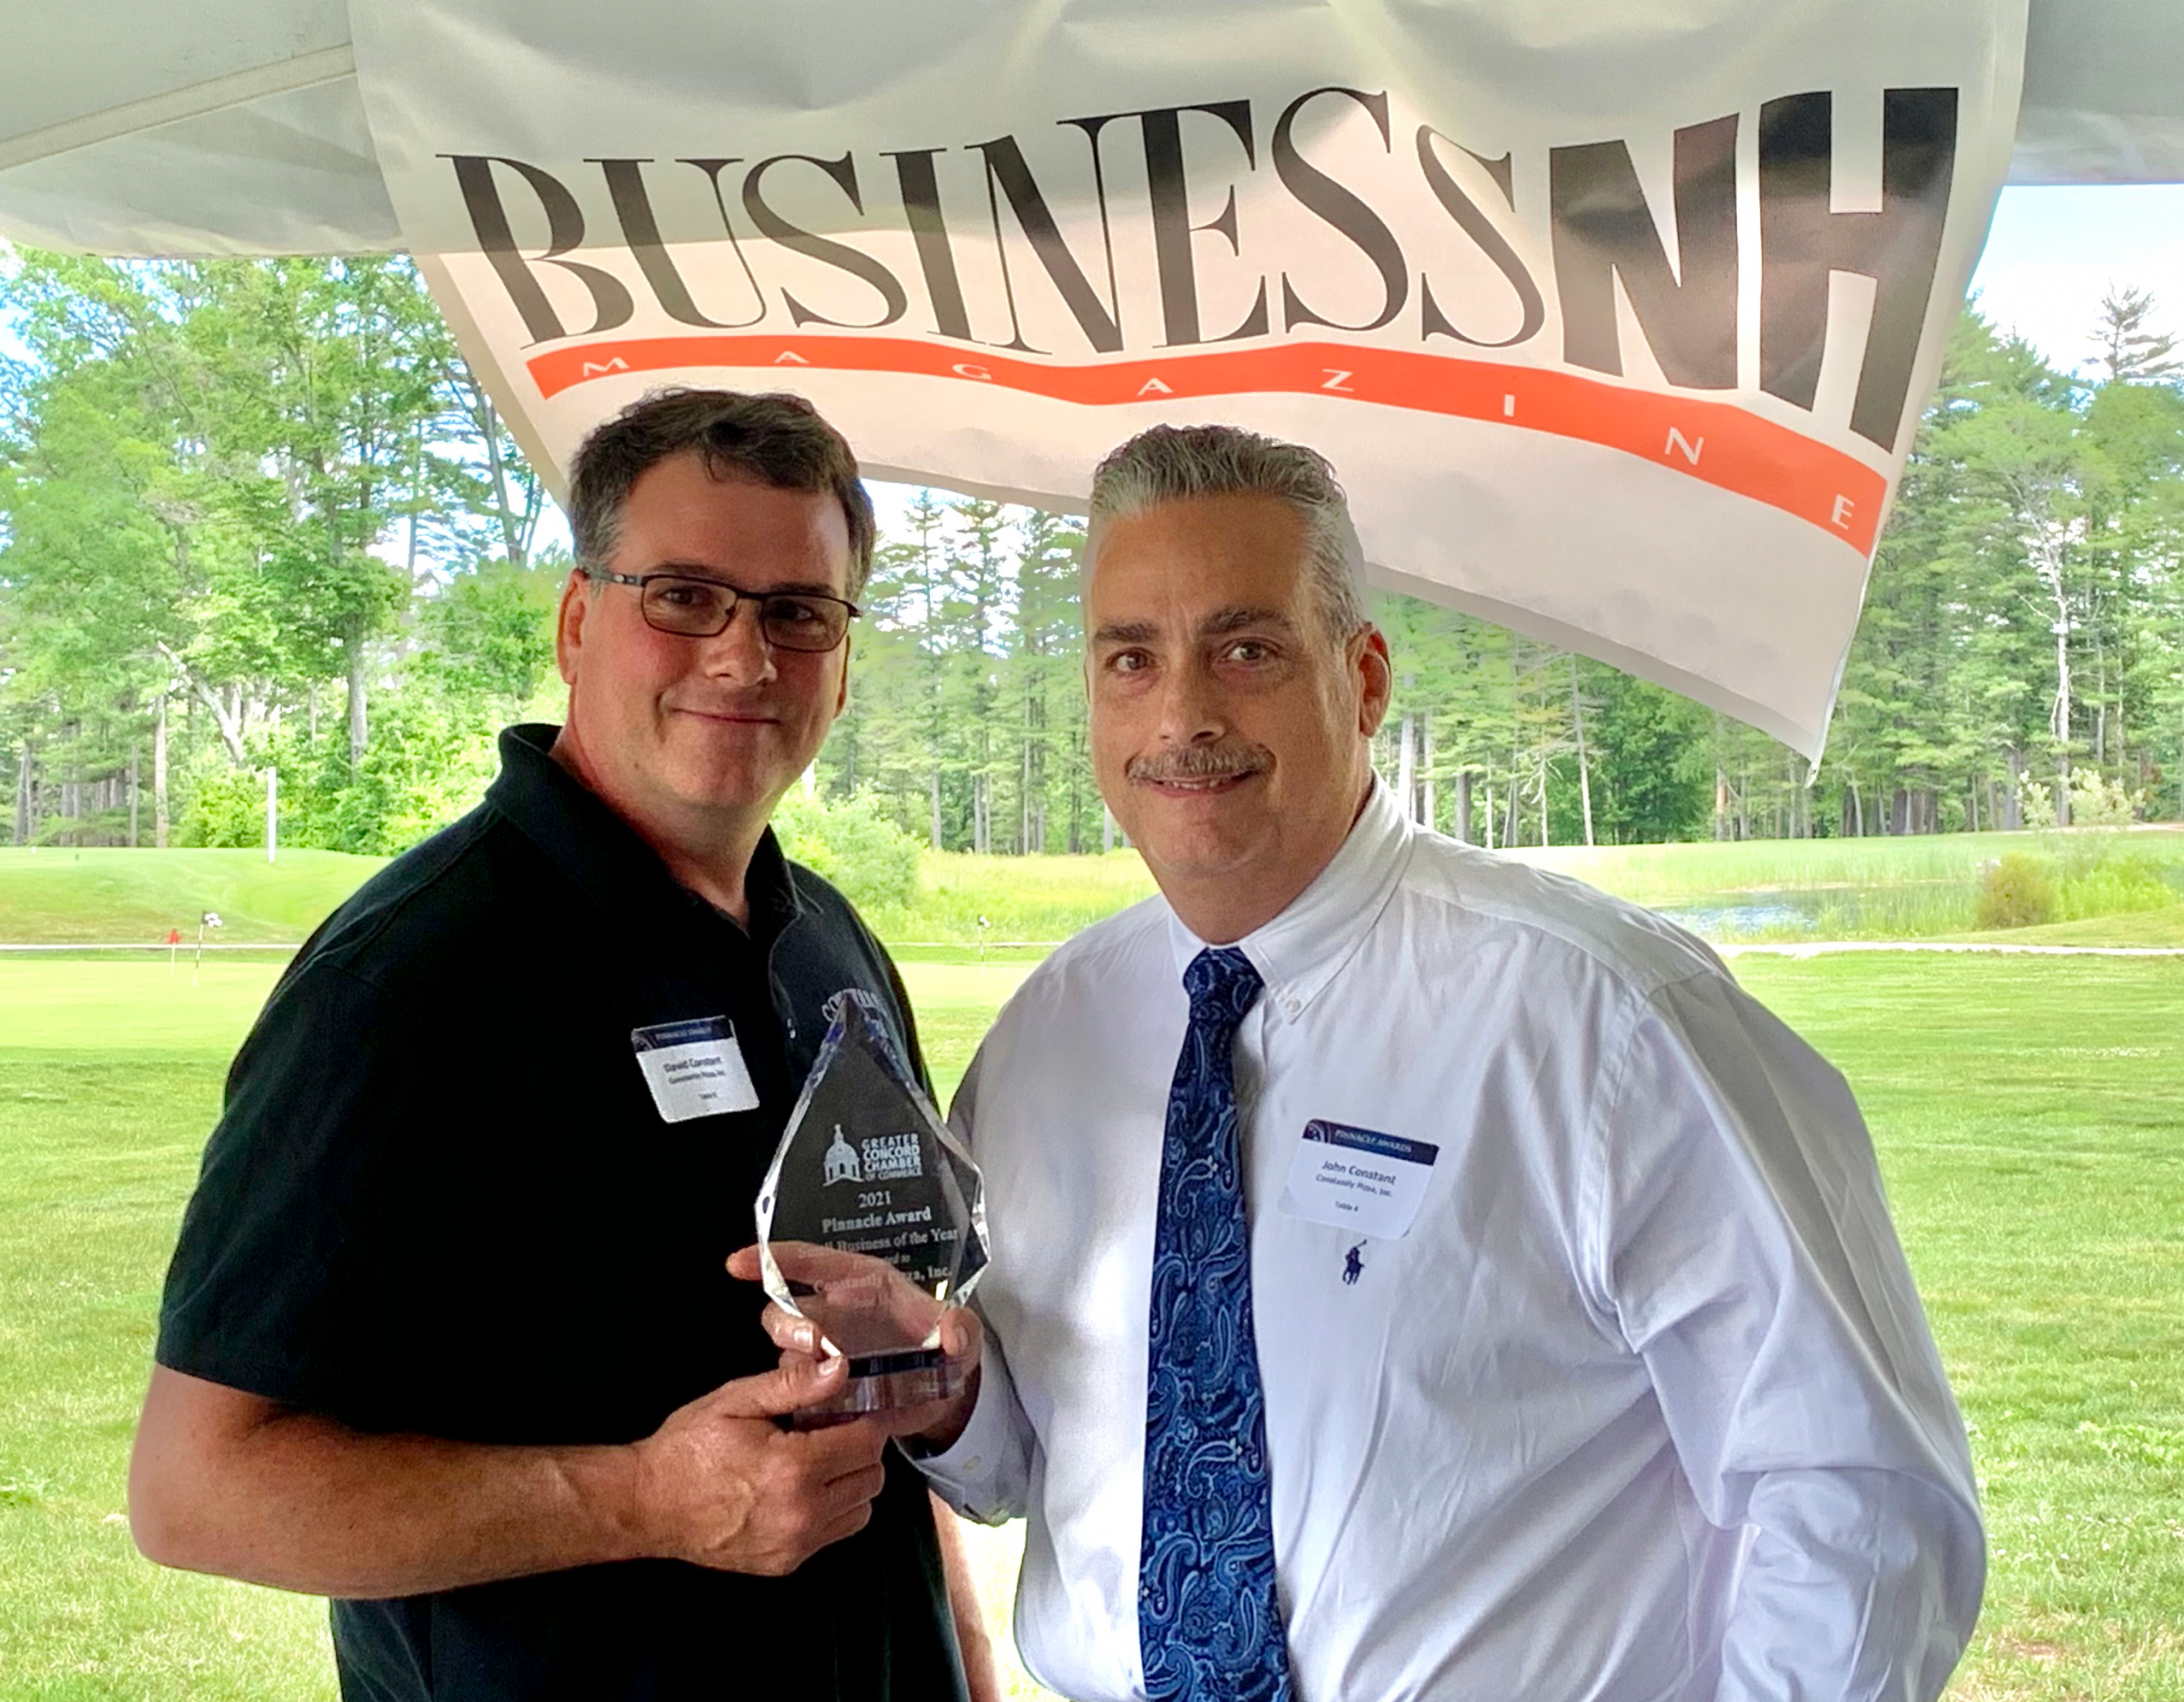 John and Dave Constant of Constantly Pizza, Inc. received the Pinnacle Small Business of the Year Award